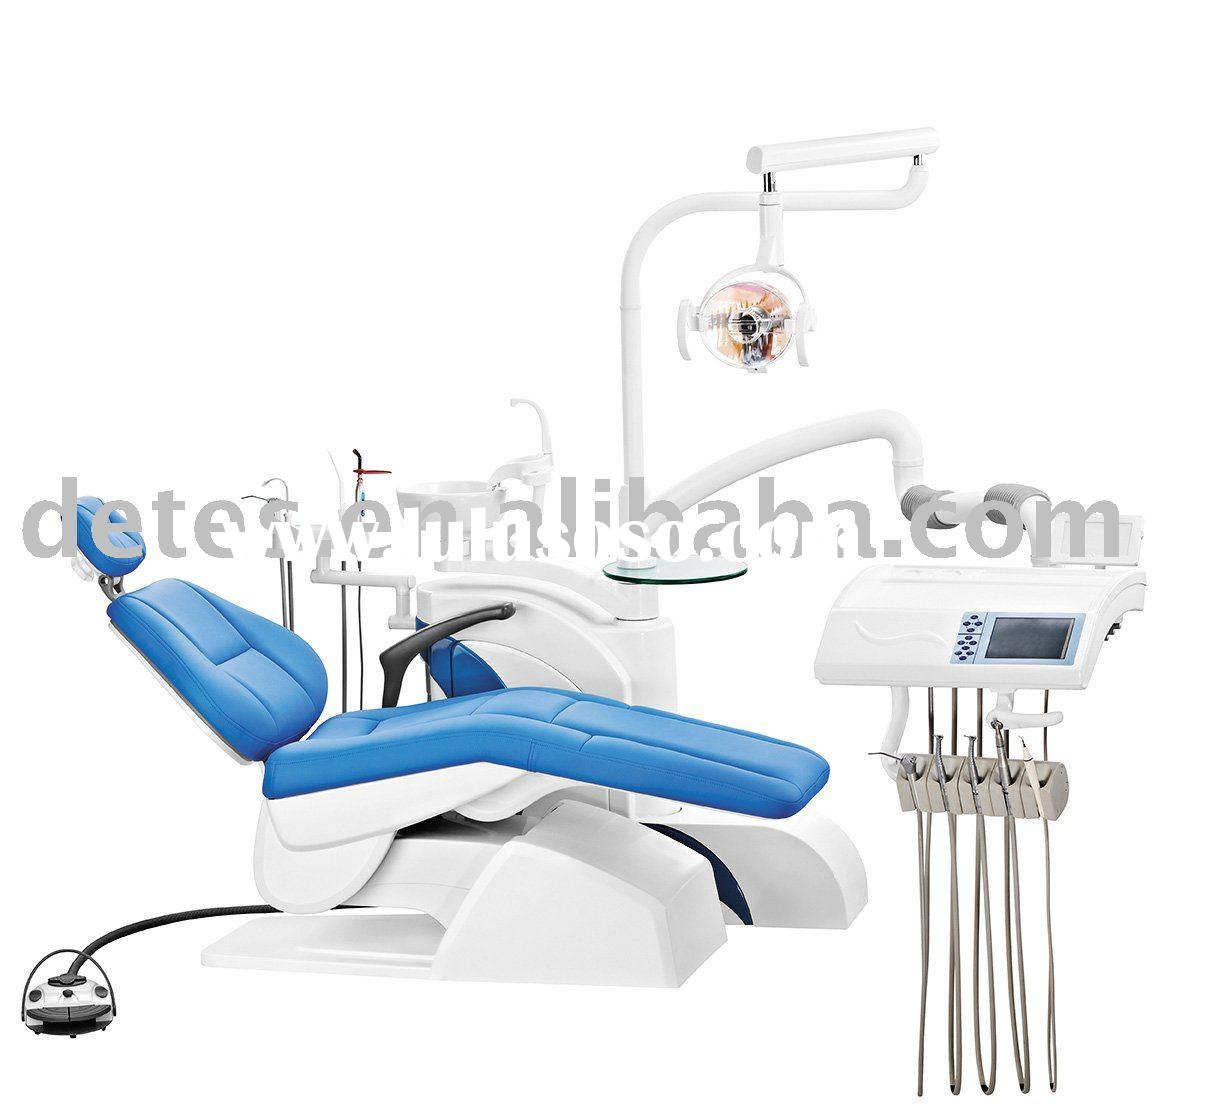 2010 Hot Computer Controlled Integral Dental Chair/Unit TOP300 Touch